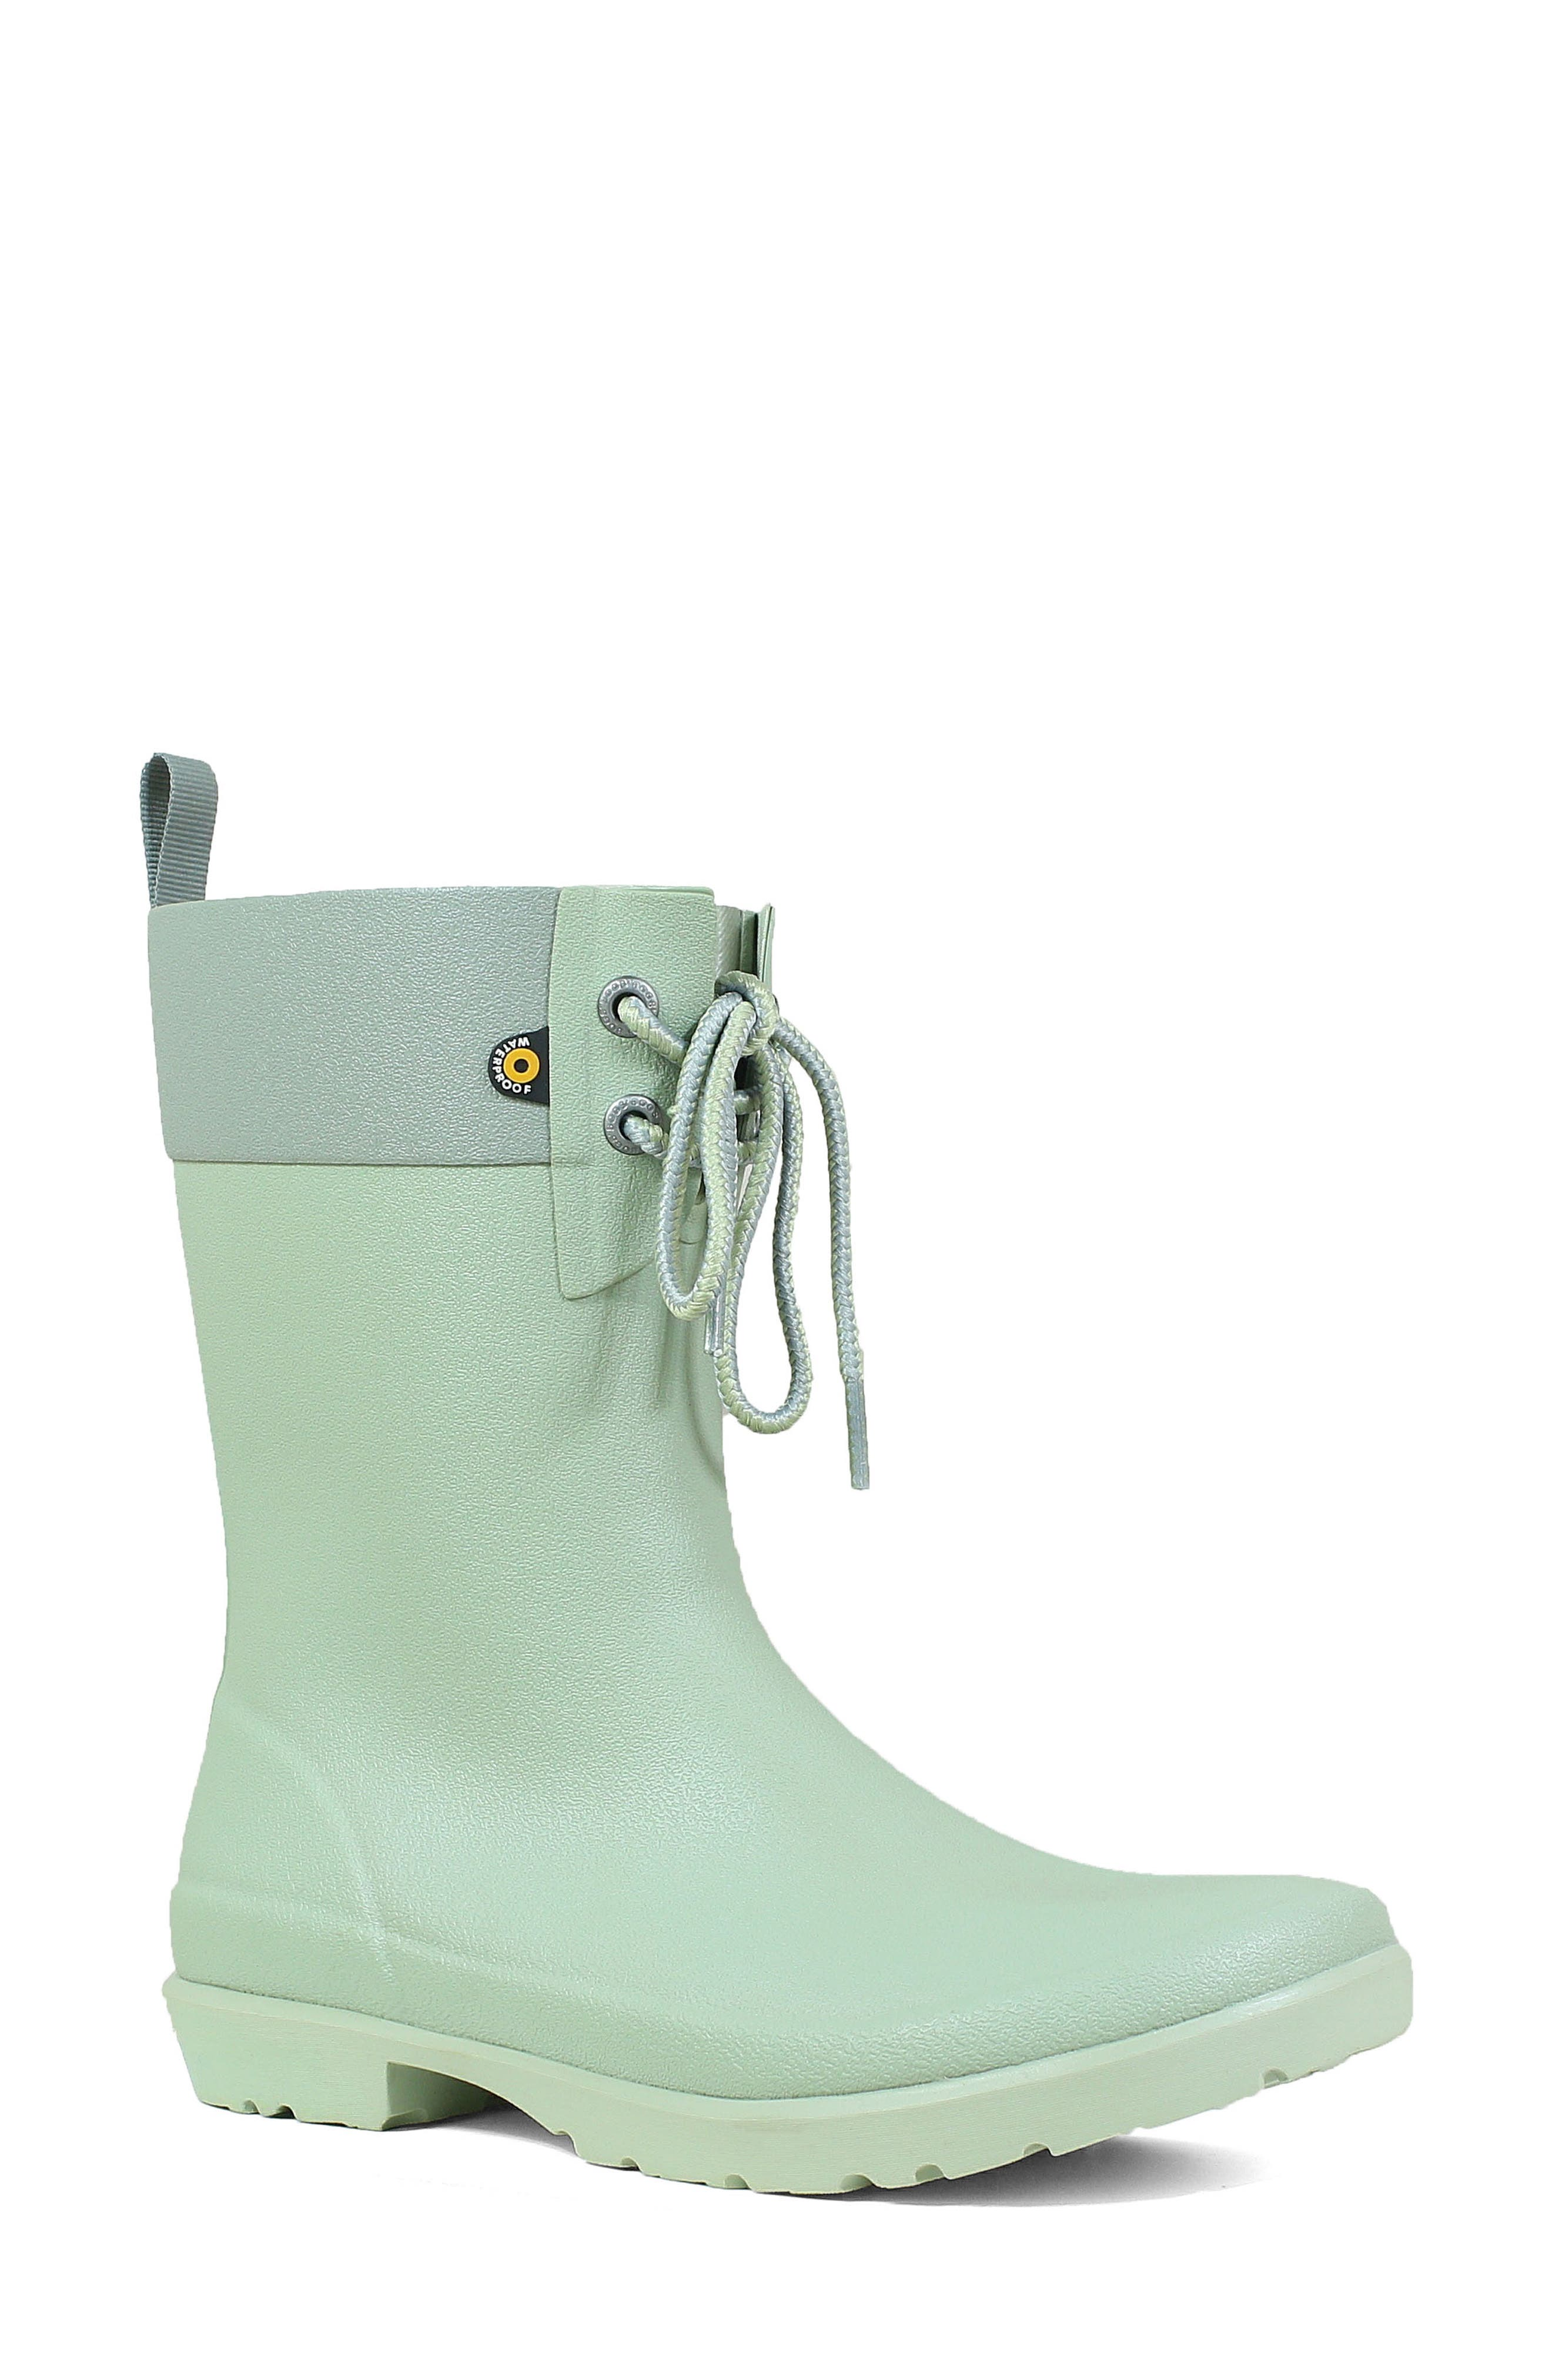 Bogs Floral Lace-Up Waterproof Rain Boot, Green